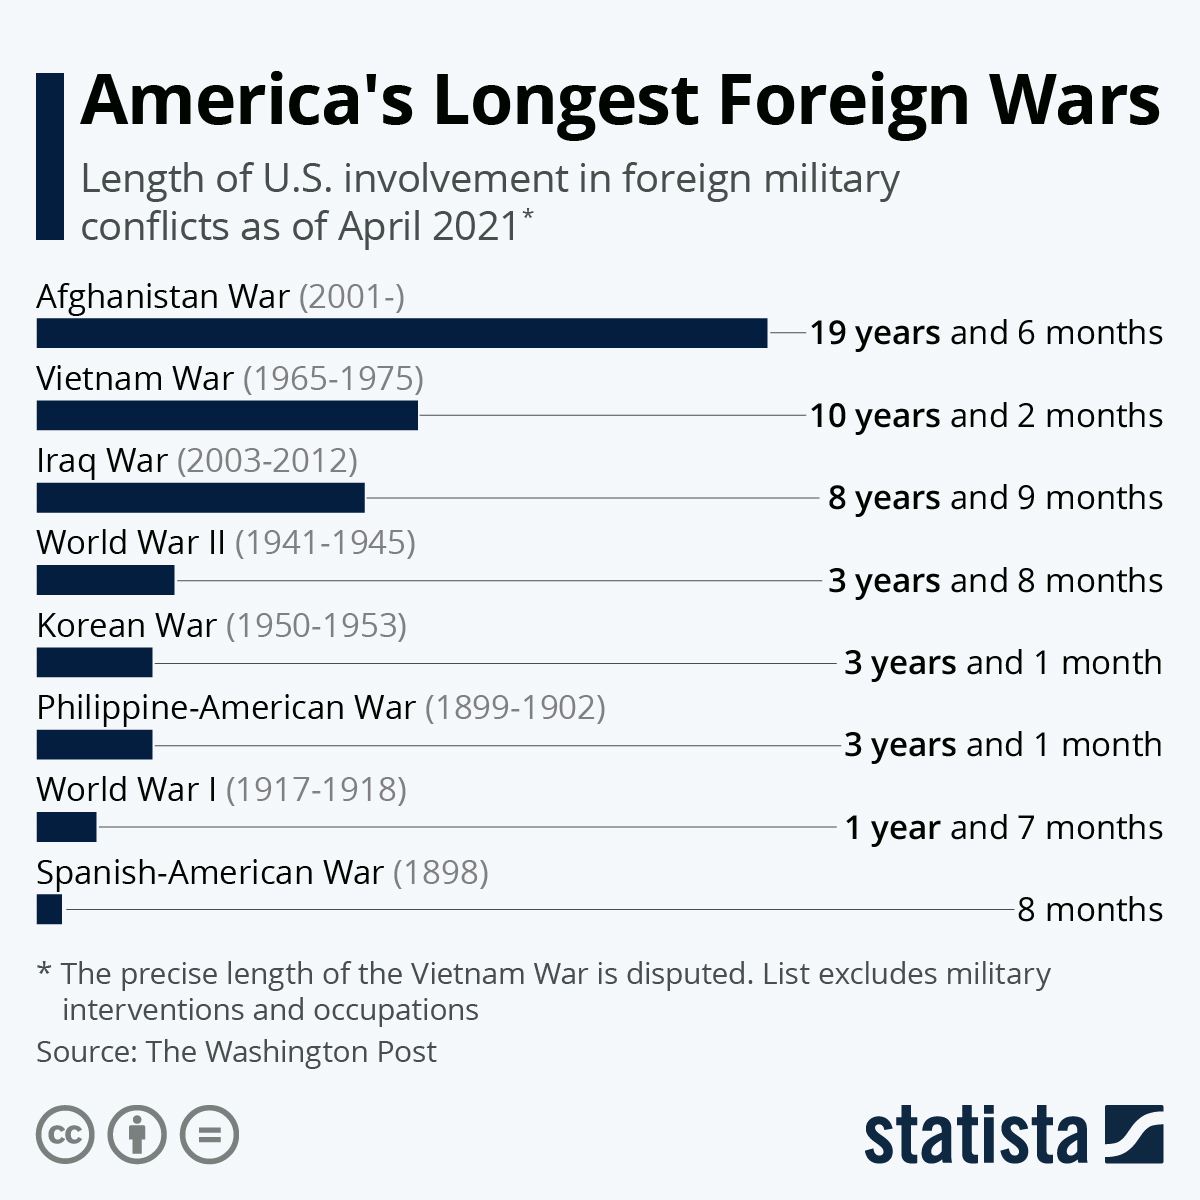 Visualizing America's Longest Foreign Wars